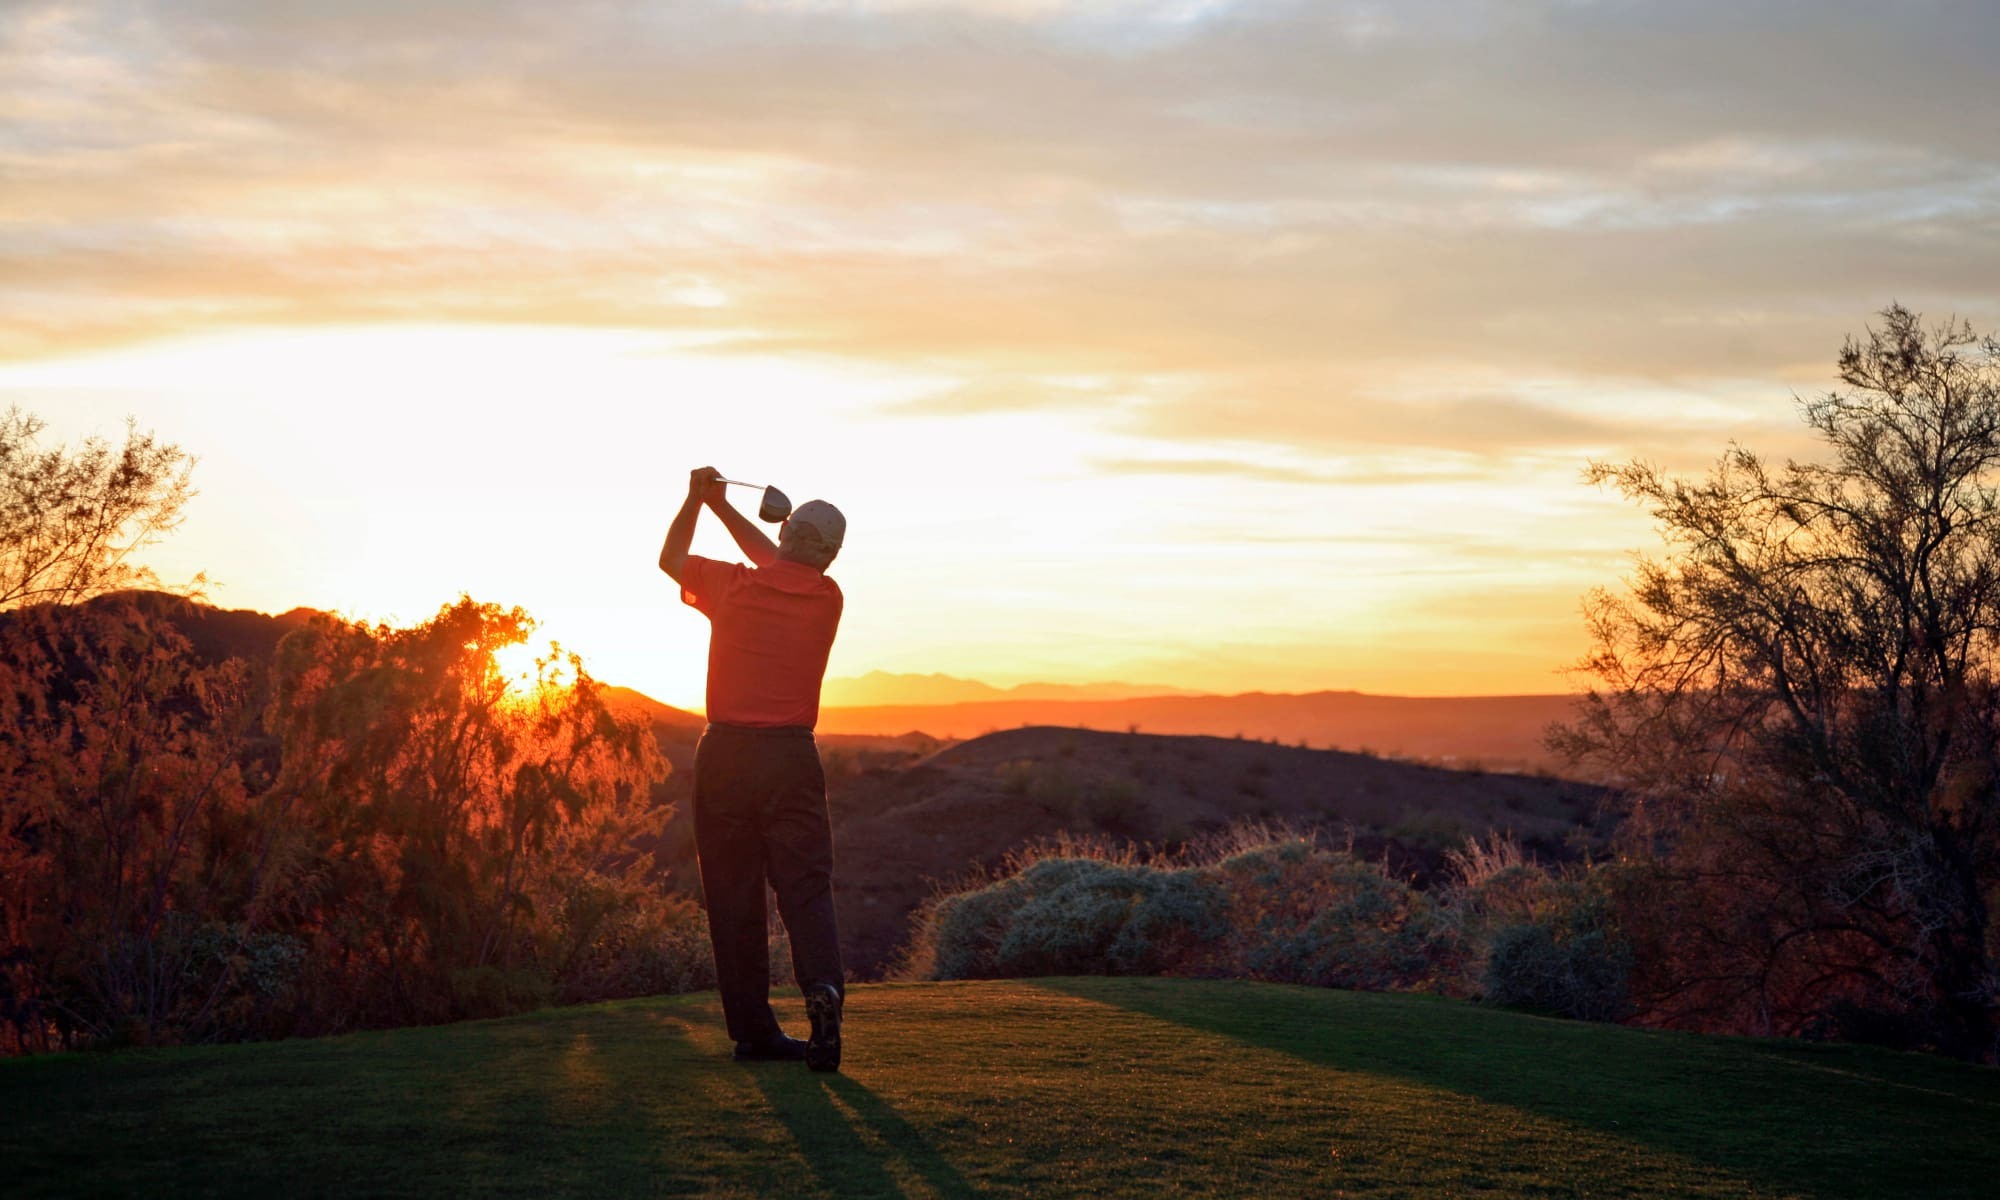 Senior man practicing golf in Chandler, Arizona